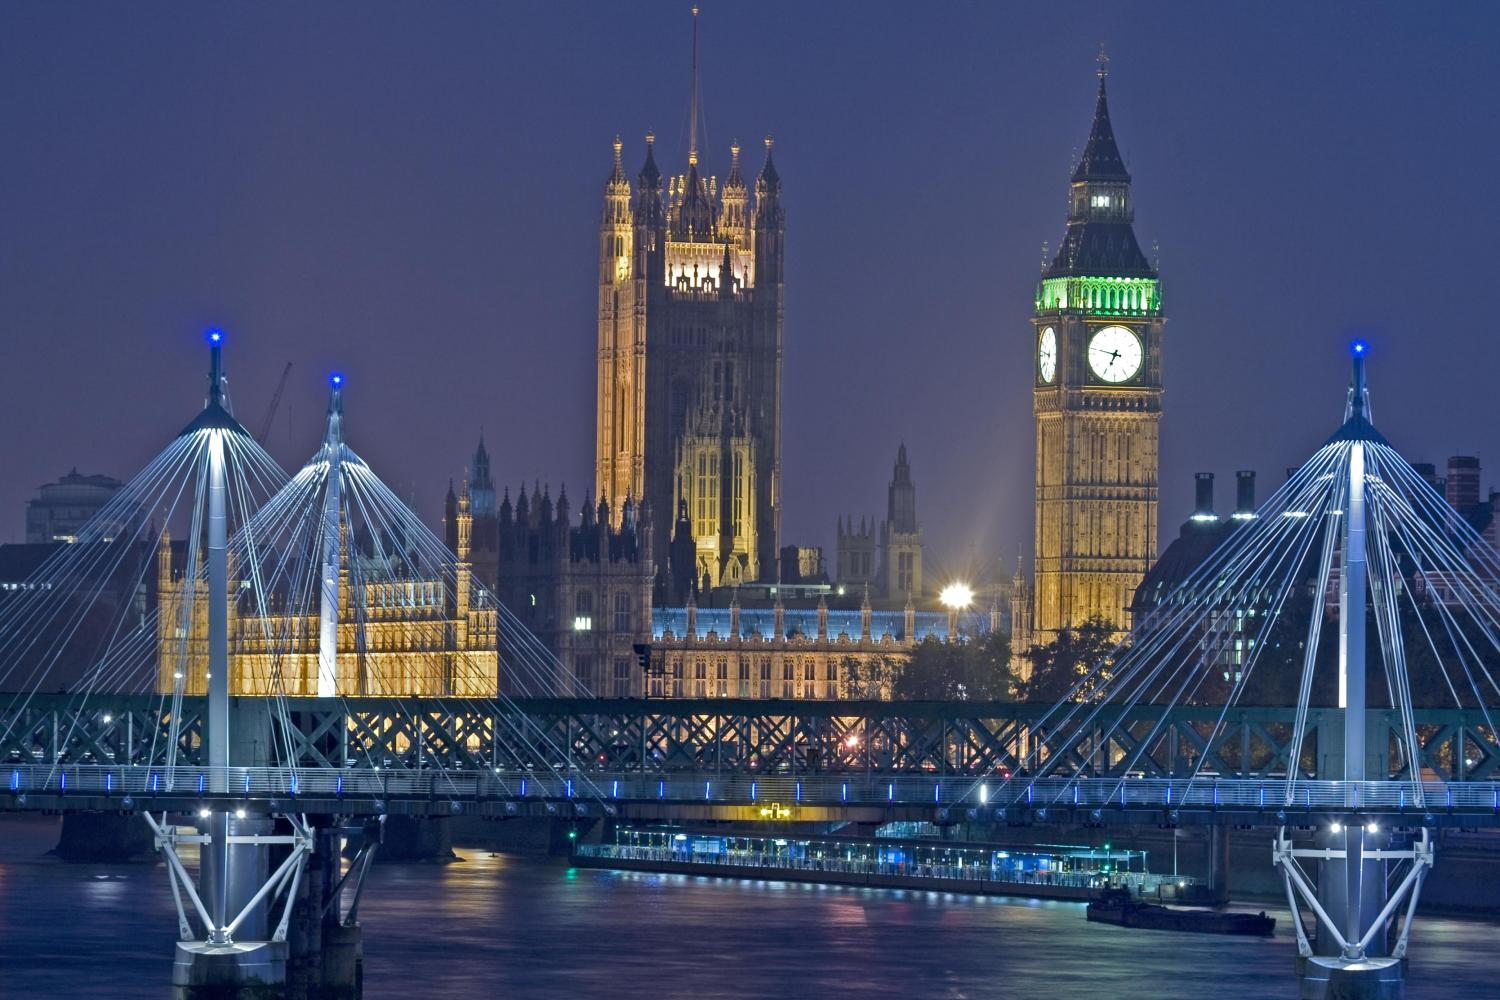 Make Your London Tour Memorable With These Christmas Tours